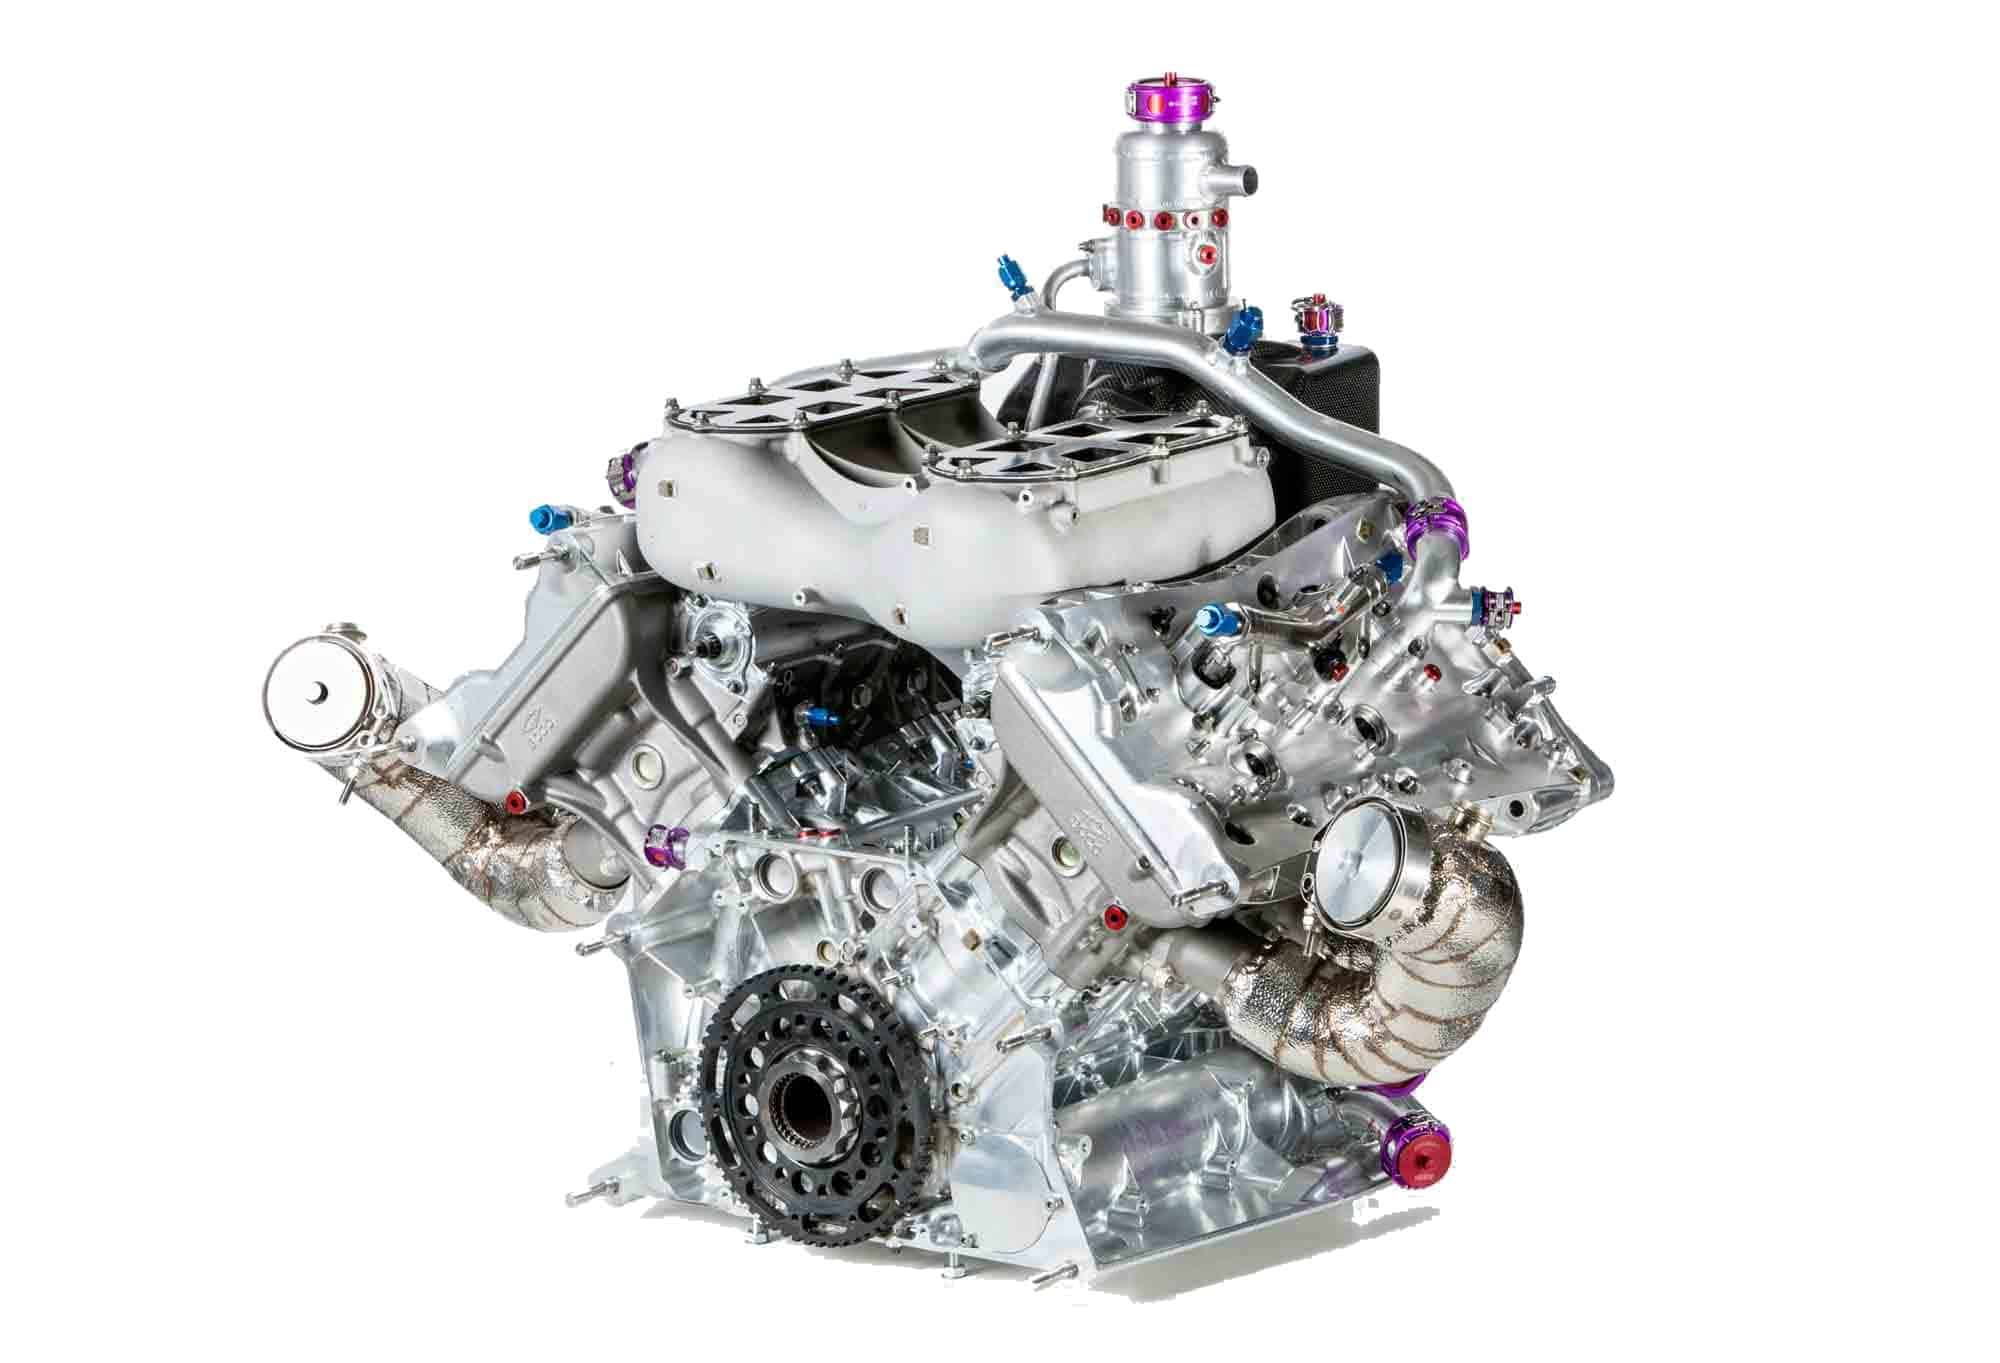 Porsche 919 V4 Wec Lmp1 Turbo Engine Right Rear